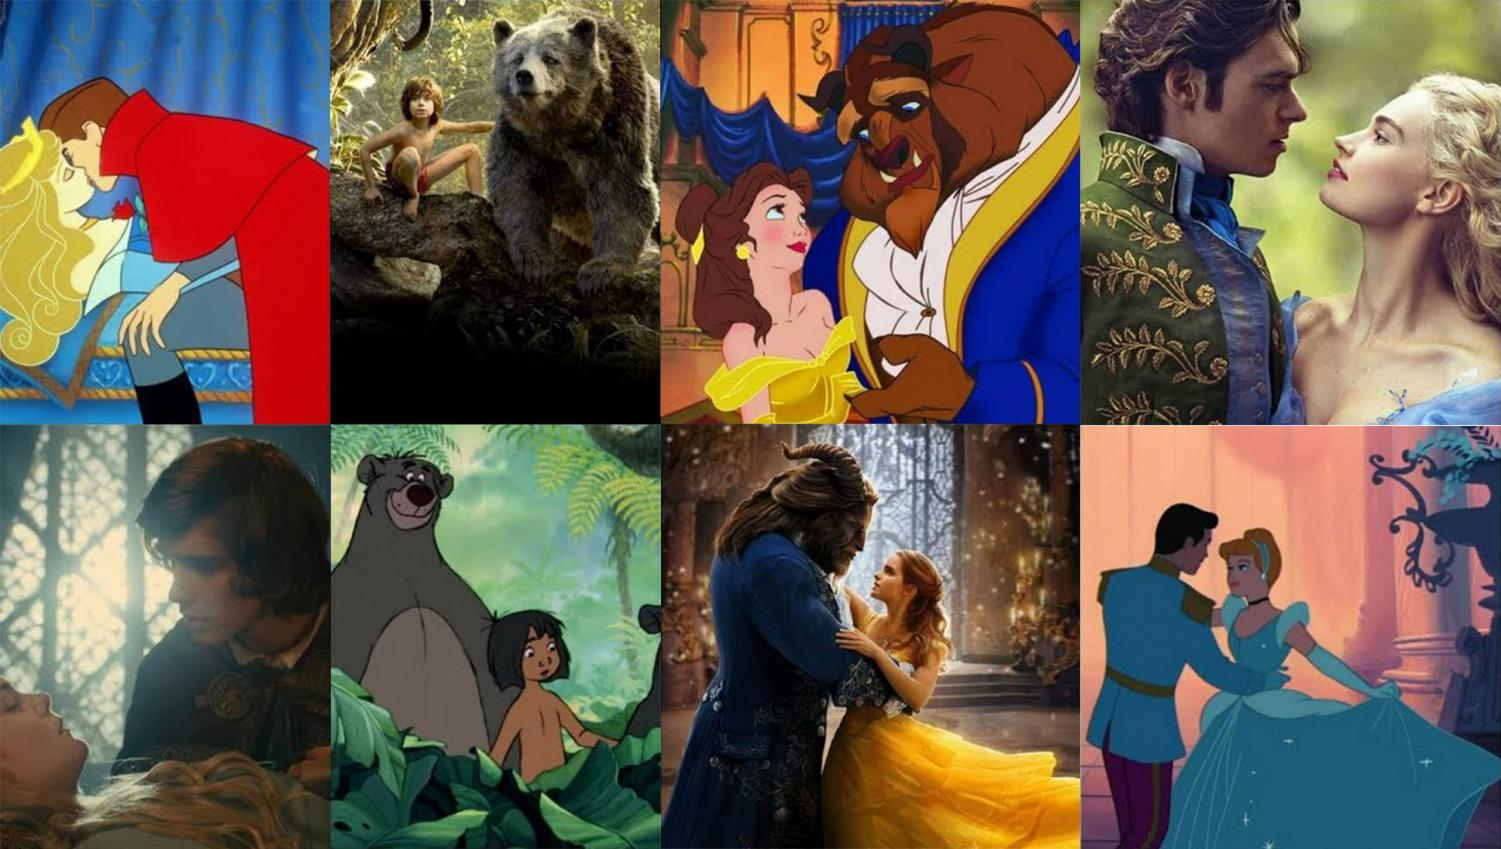 Compared side-by-side by its original, each live-action remake seems to be unnecessary. However, can audiences enjoy them just as much as their originals?